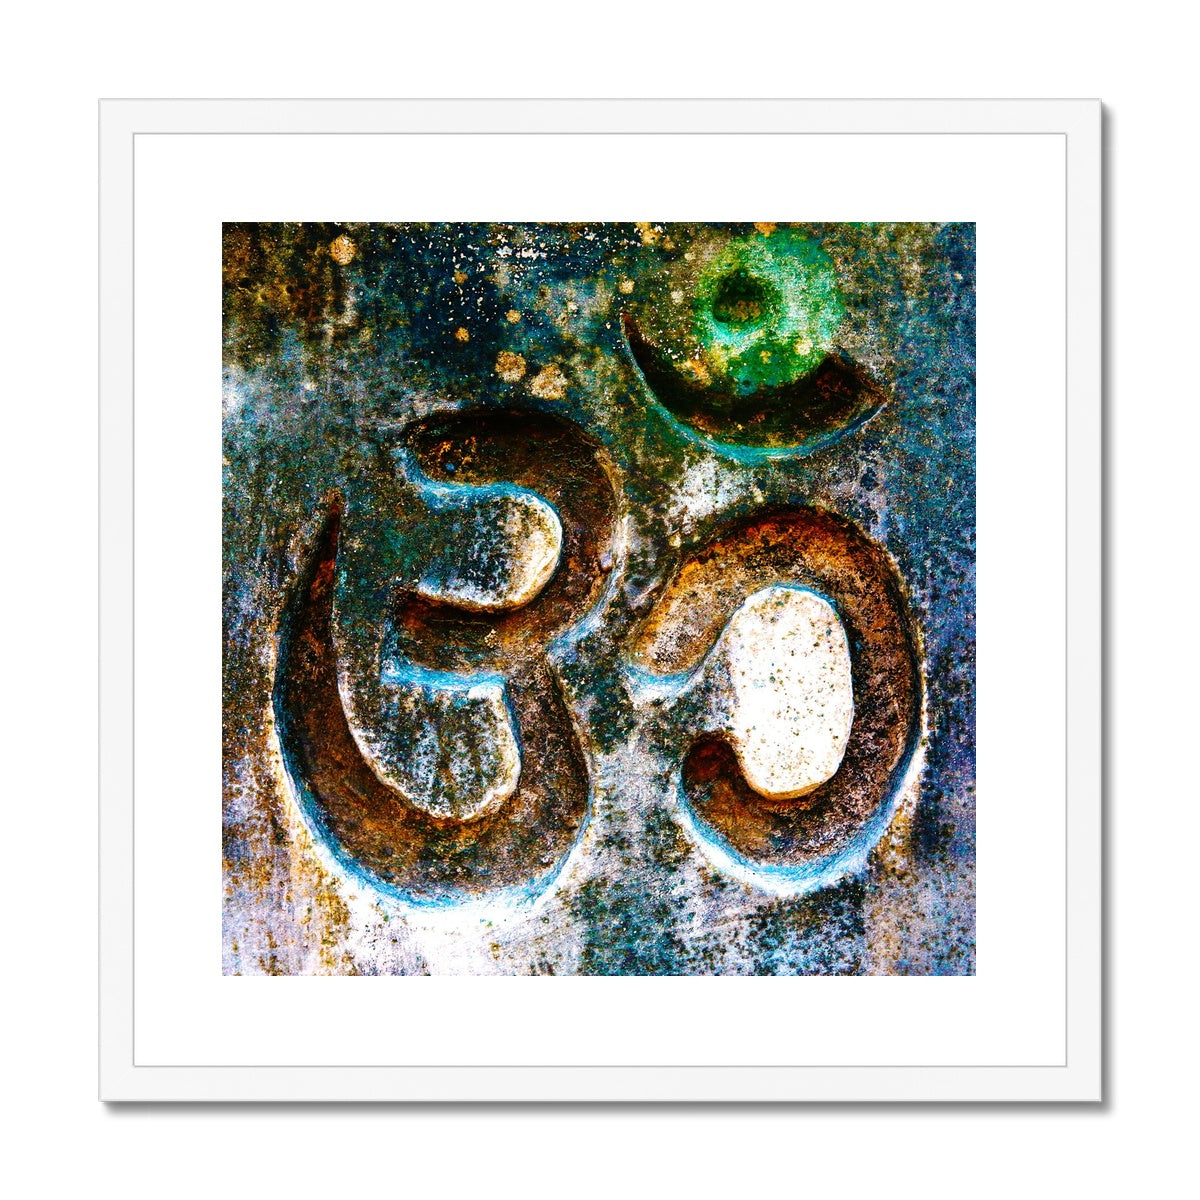 OM Framed & Mounted Print